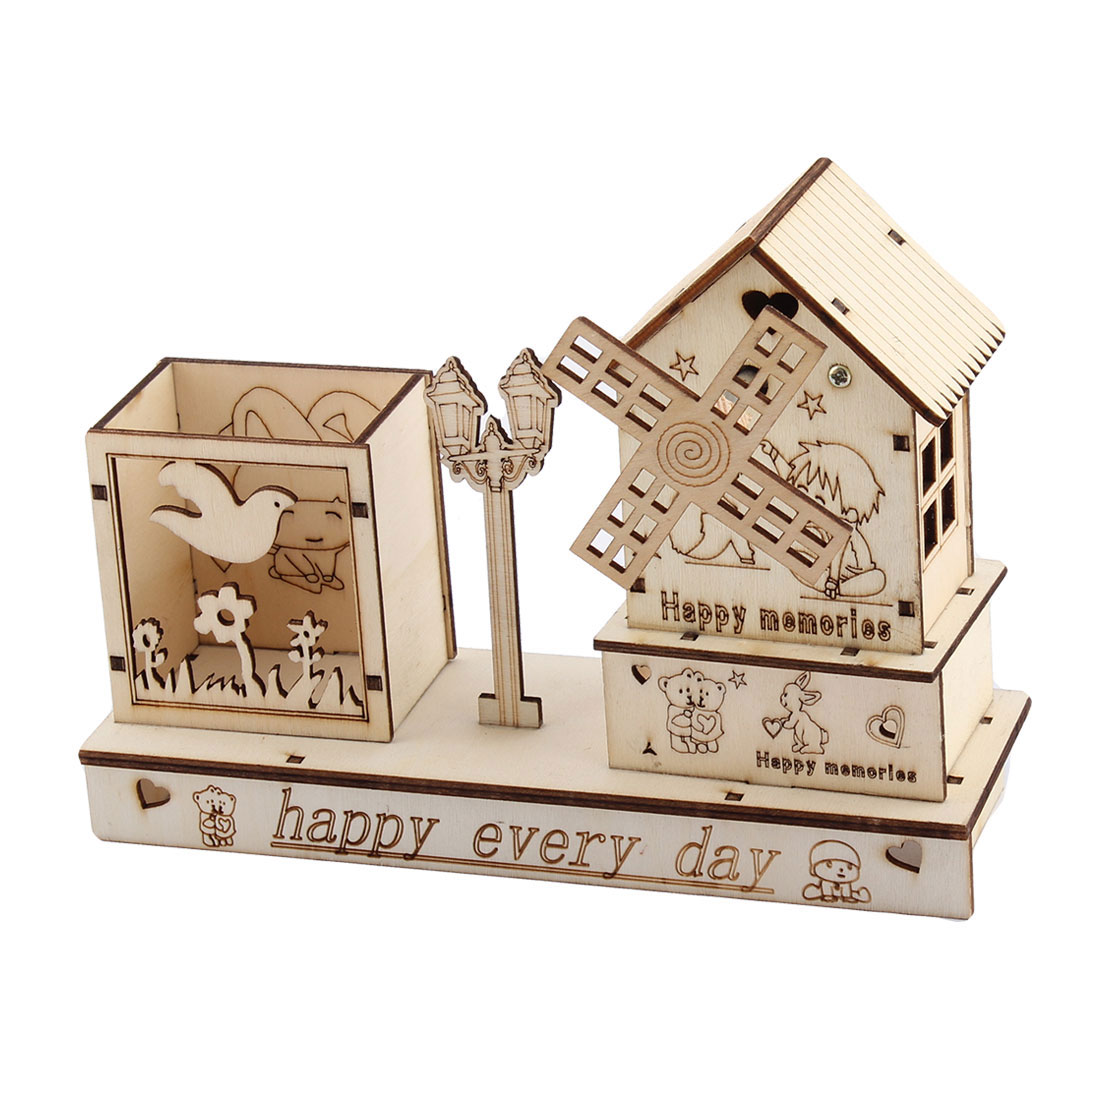 Desktop Ornament Wooden Pen Holder Clockwork Windmill Model Handmade Music Box